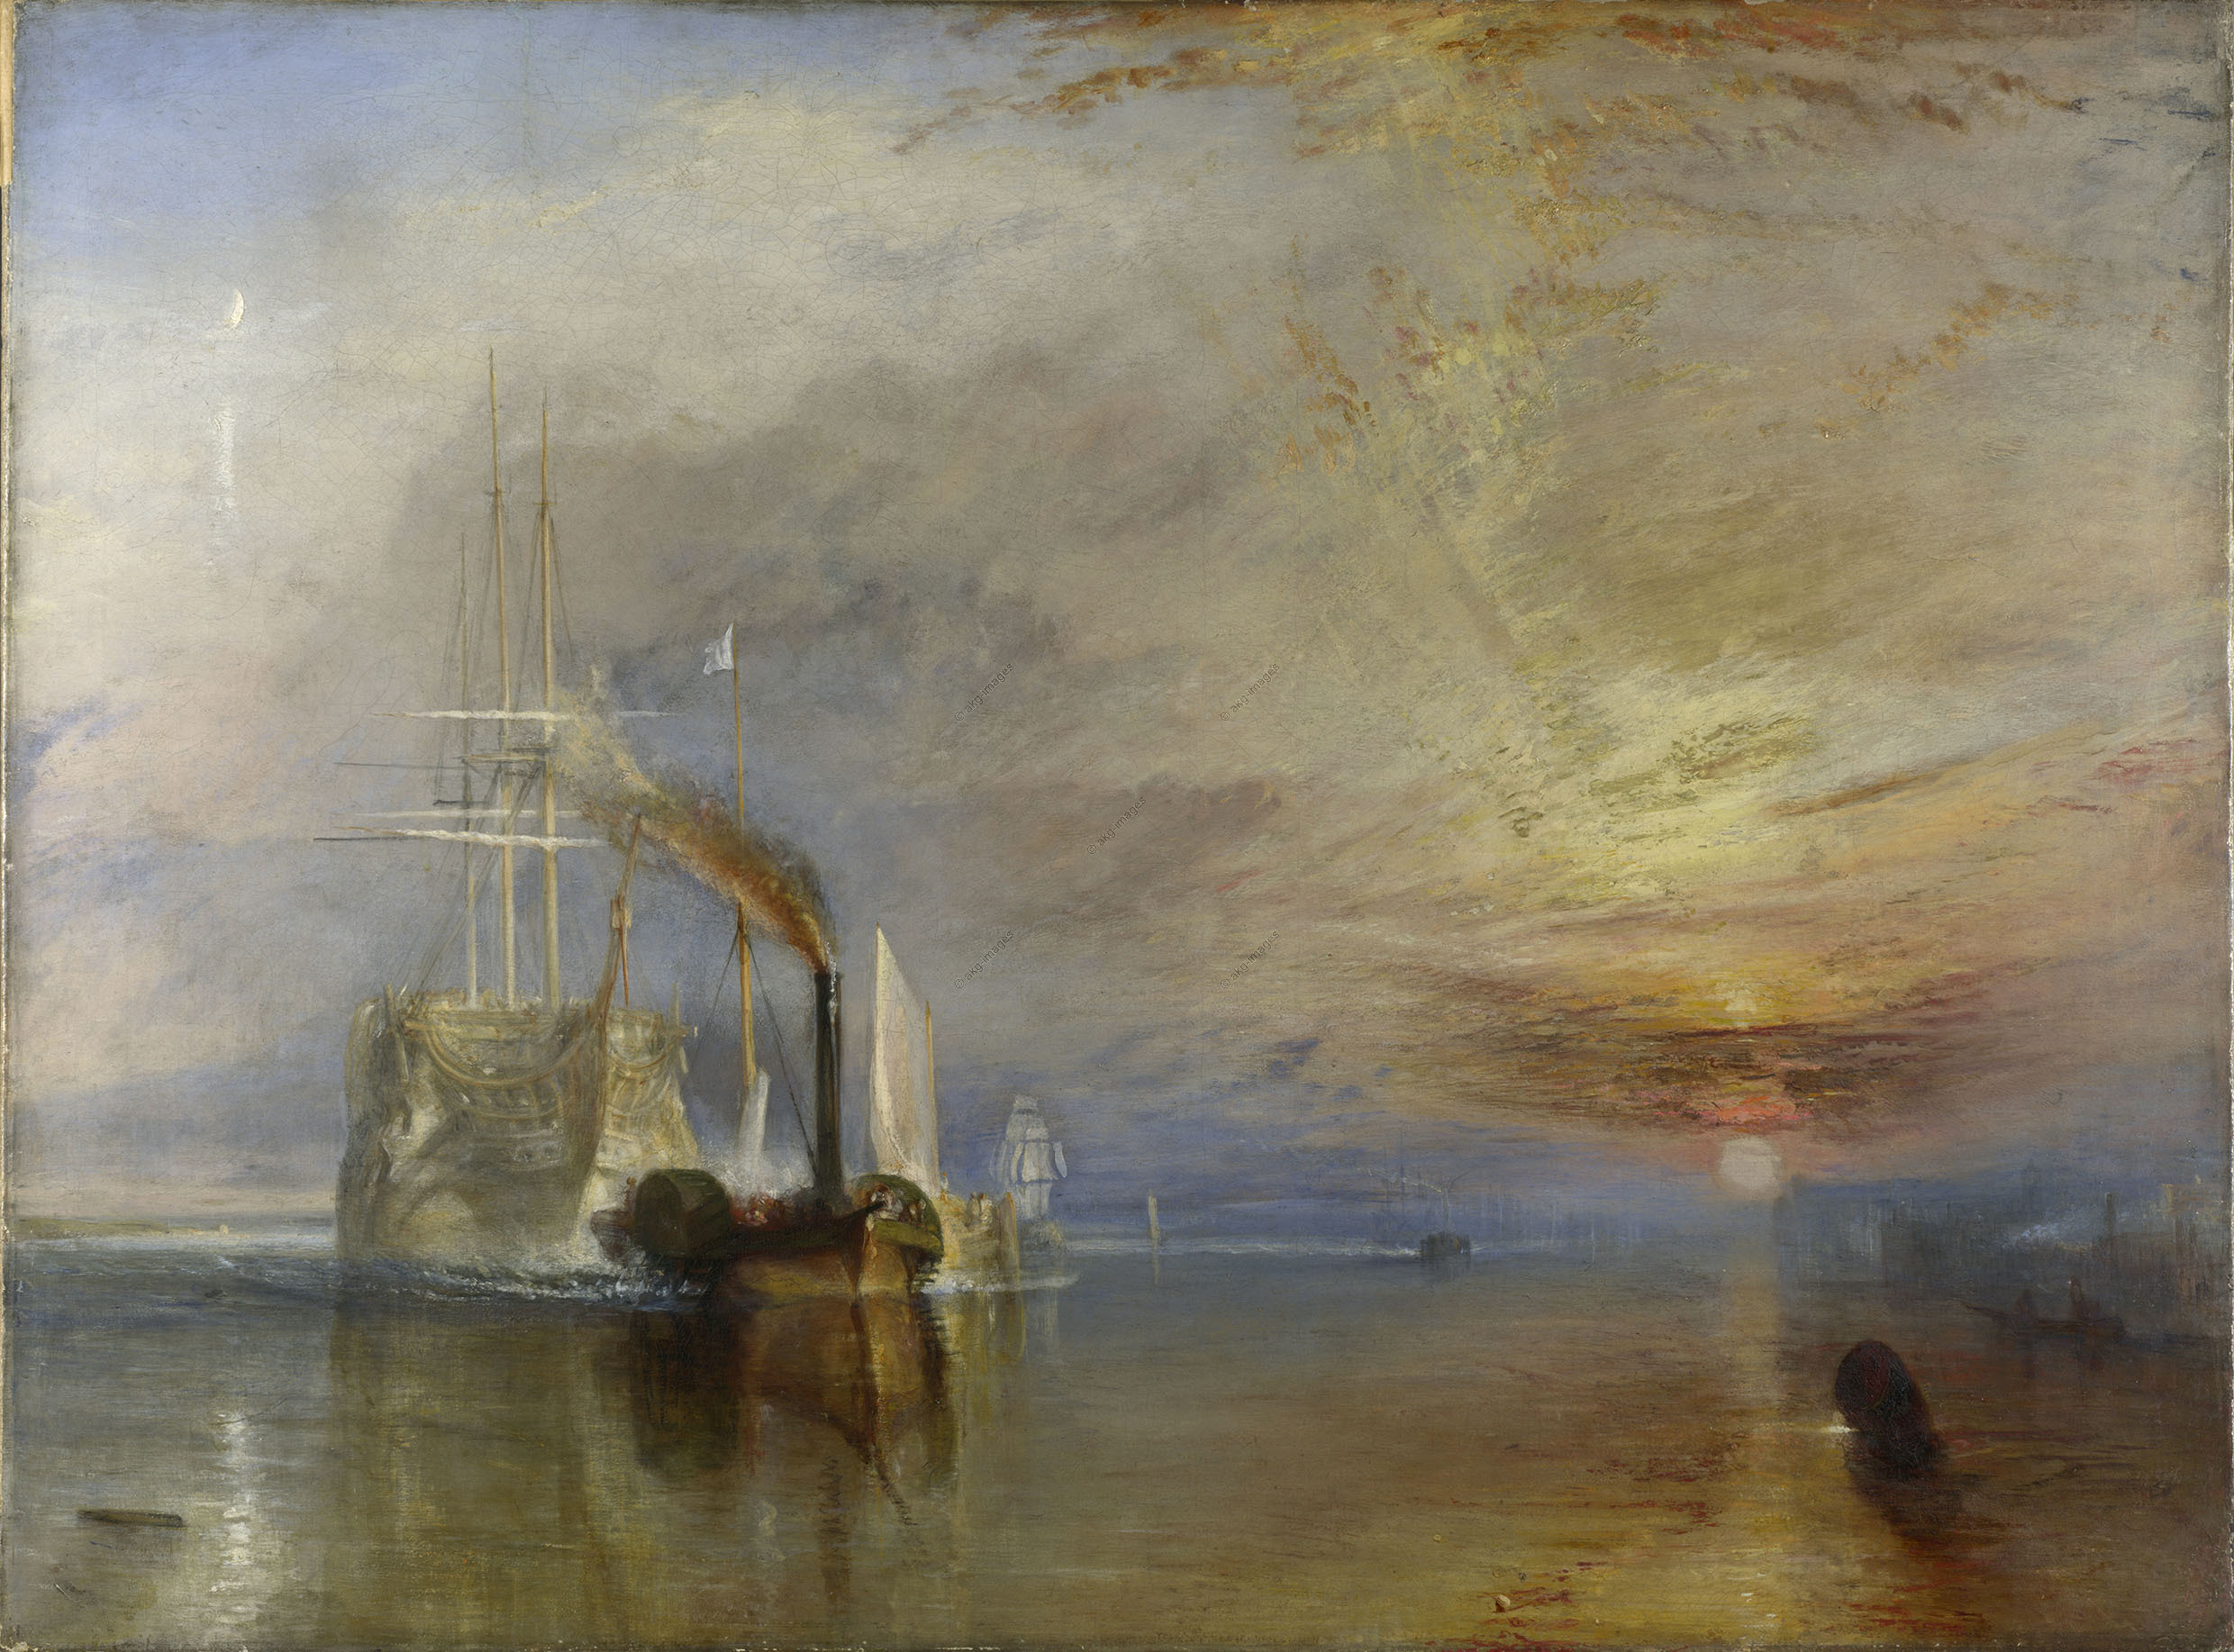 Turner, William 1775–1851. The Fighting Temeraire